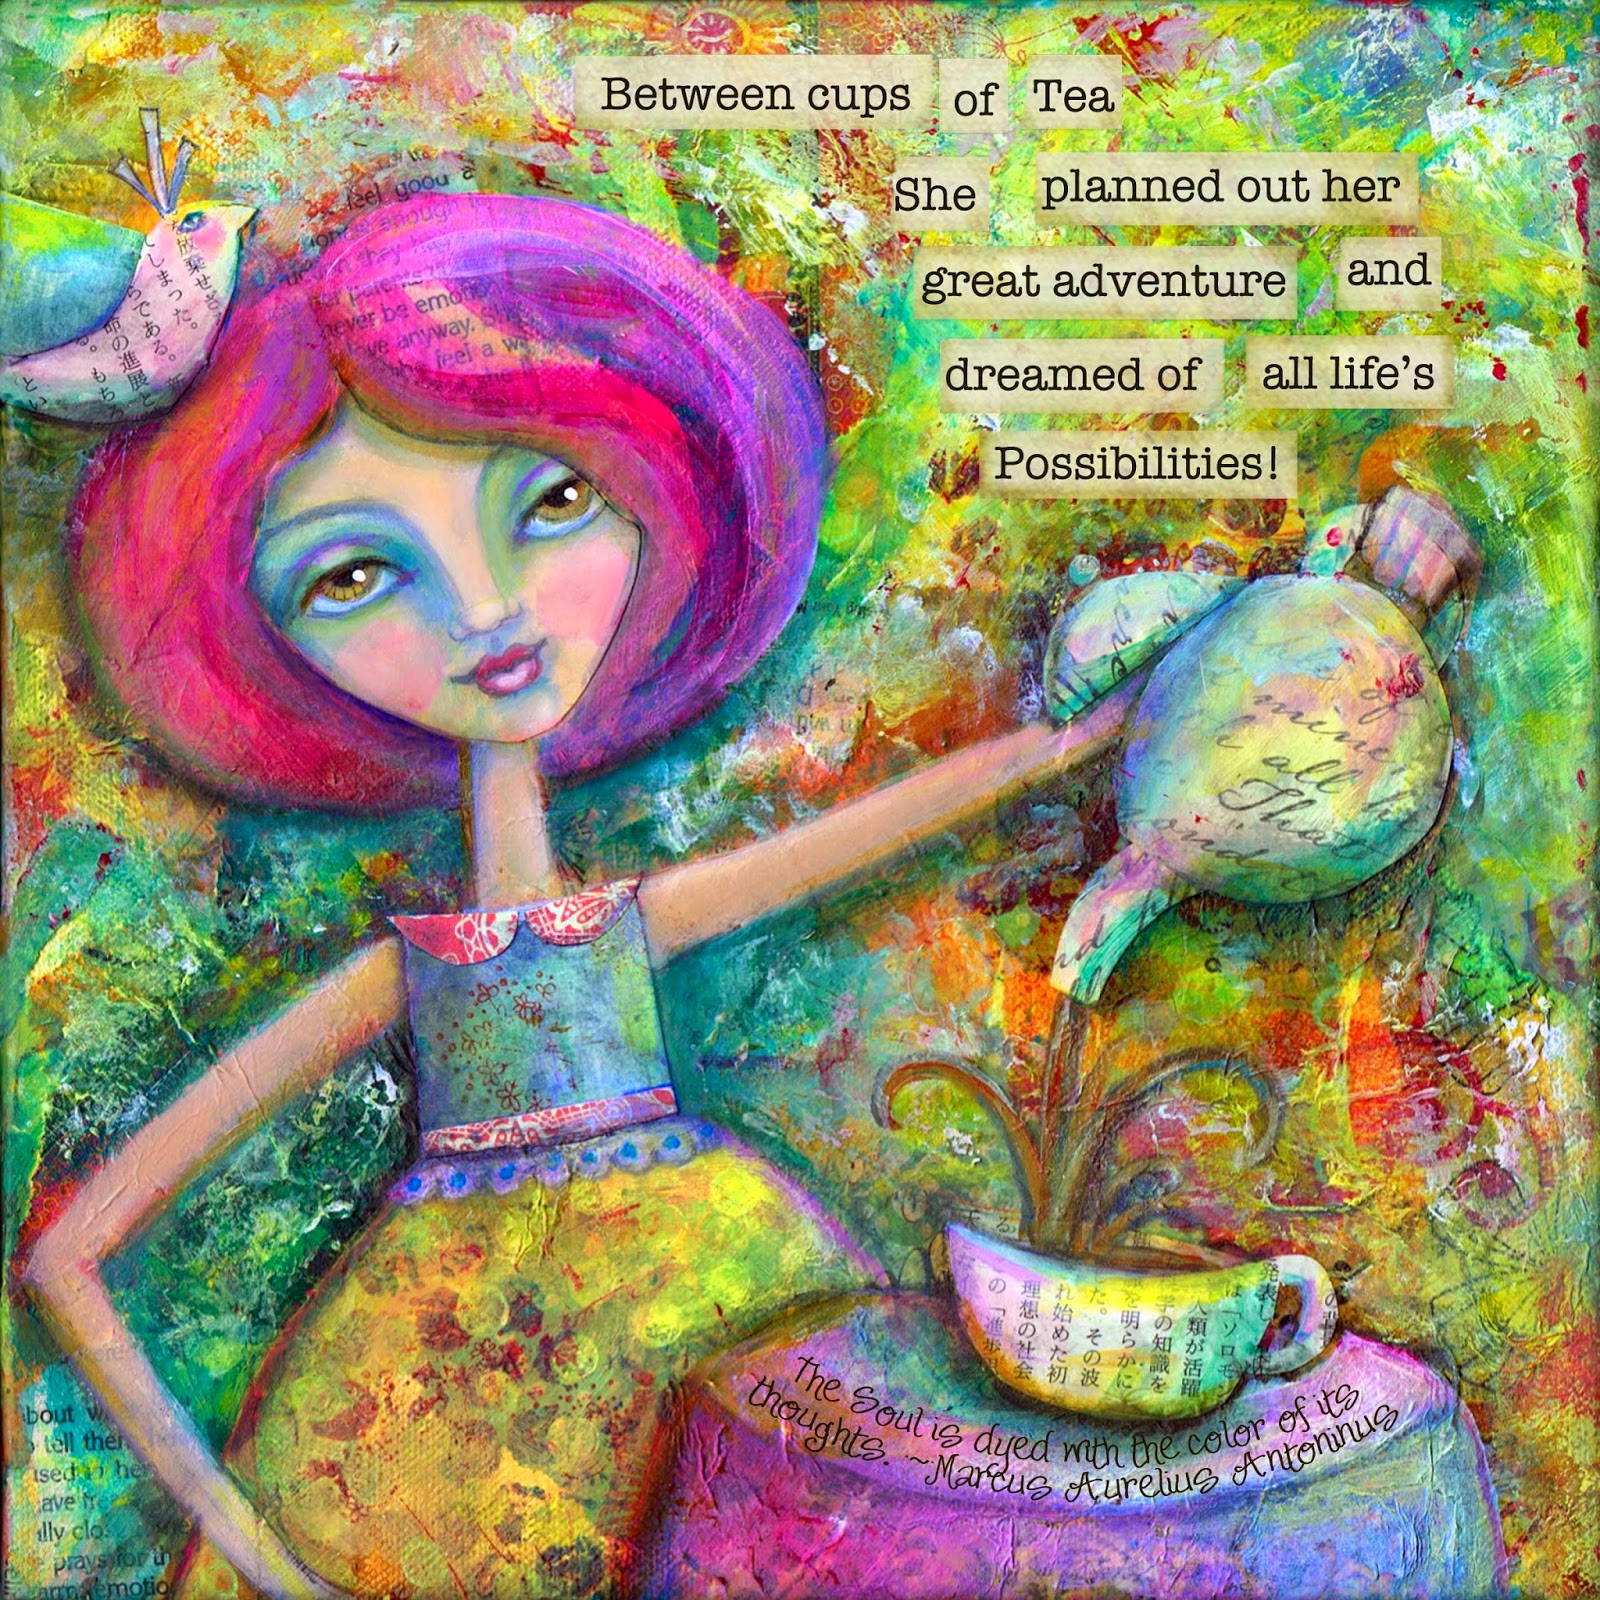 Teatime Dreams: Print of an Exuberant Multicolored Mixed Media Painting celebrating the Joy of Simple Pleasures and New Beginnings by Laurie Sikorowski